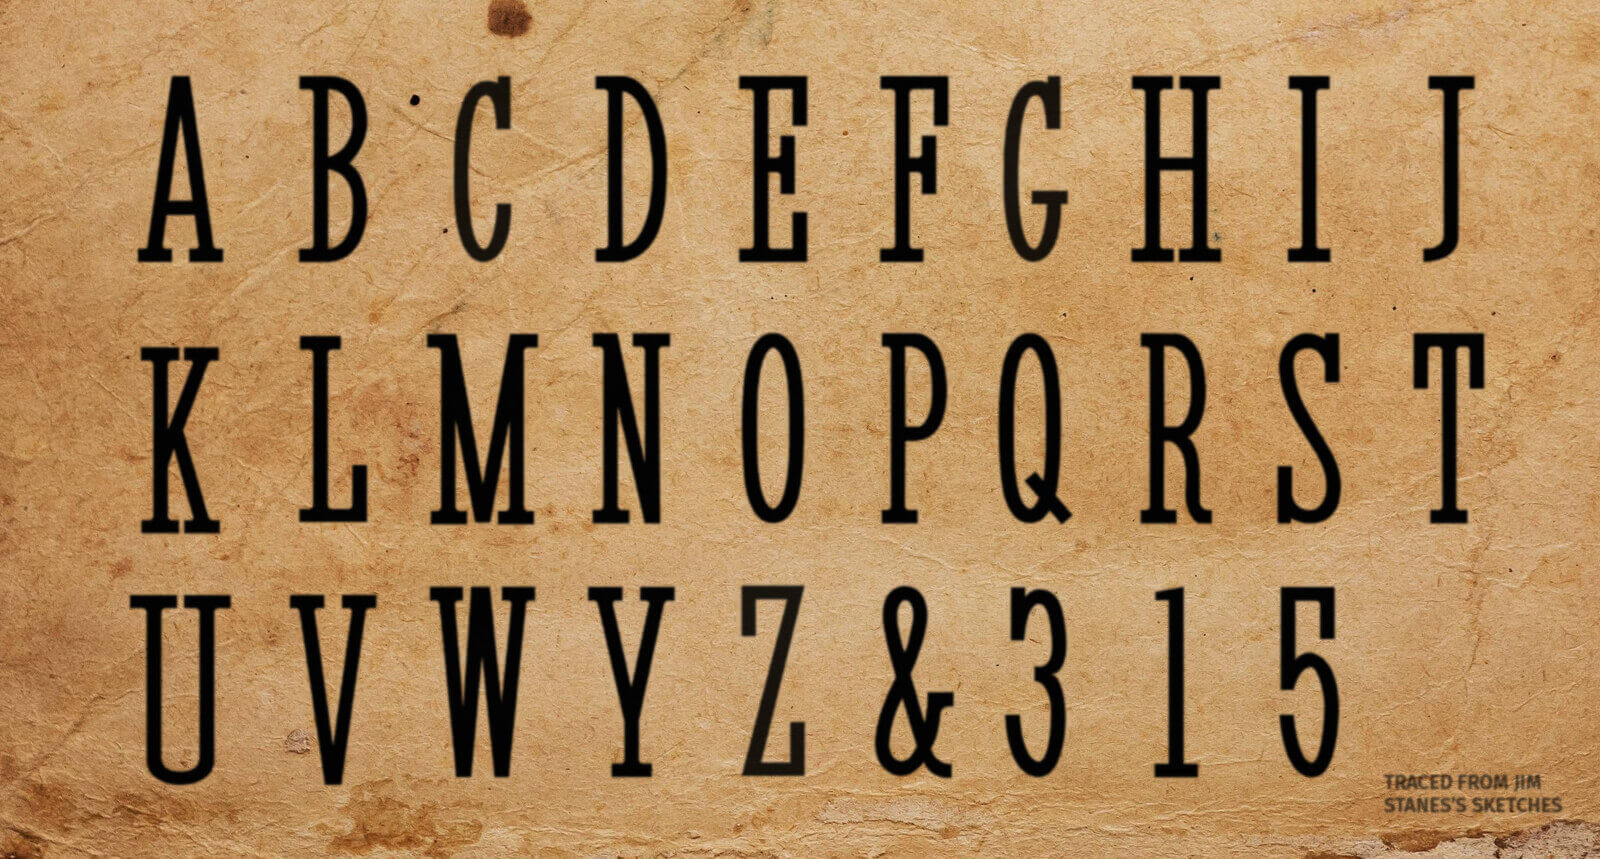 The Alienist - Custom typeface for the show